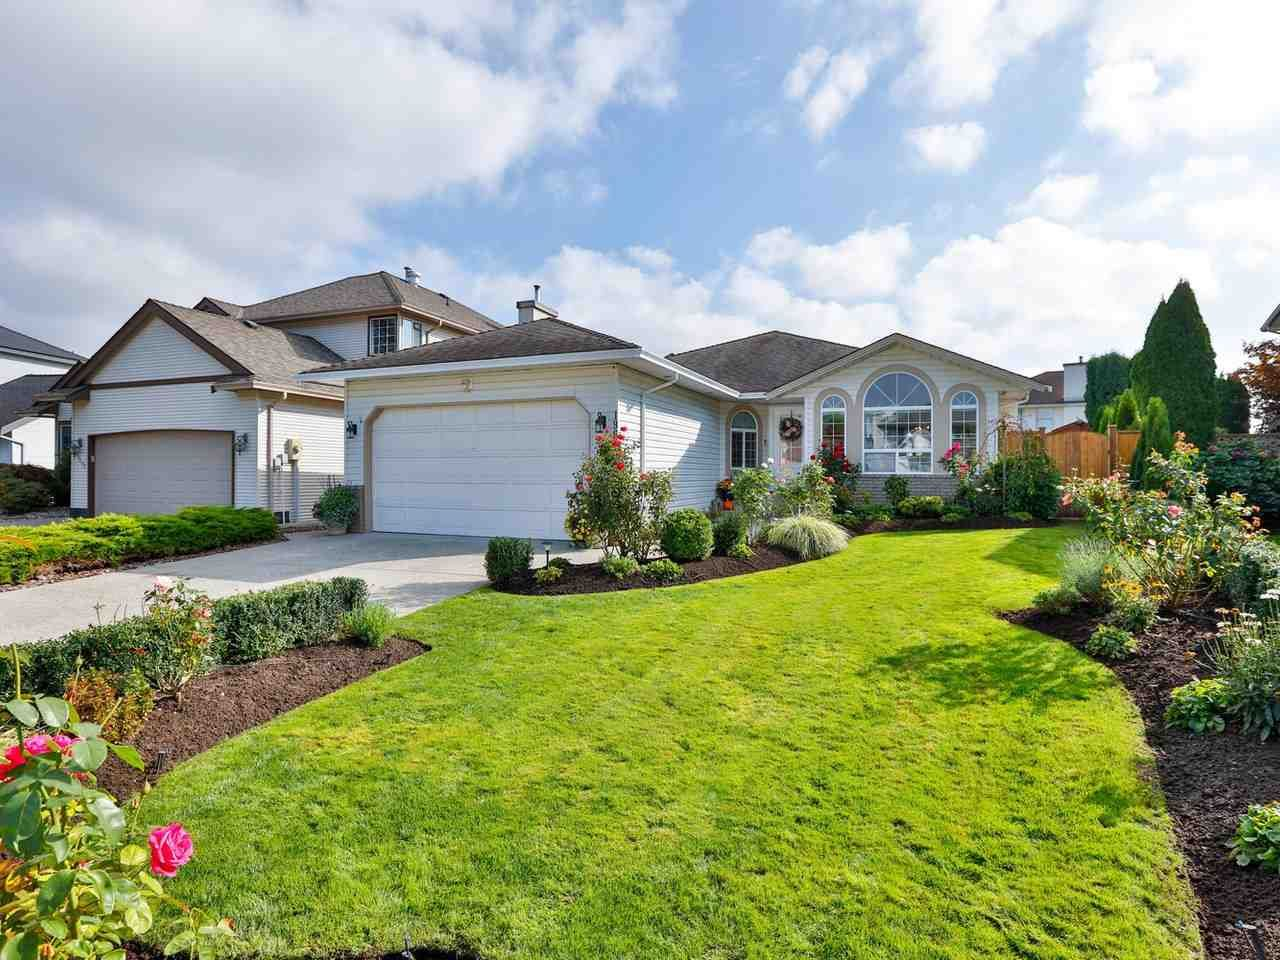 Photo 2: Photos: 19645 SOMERSET Drive in Pitt Meadows: Mid Meadows House for sale : MLS®# R2505880